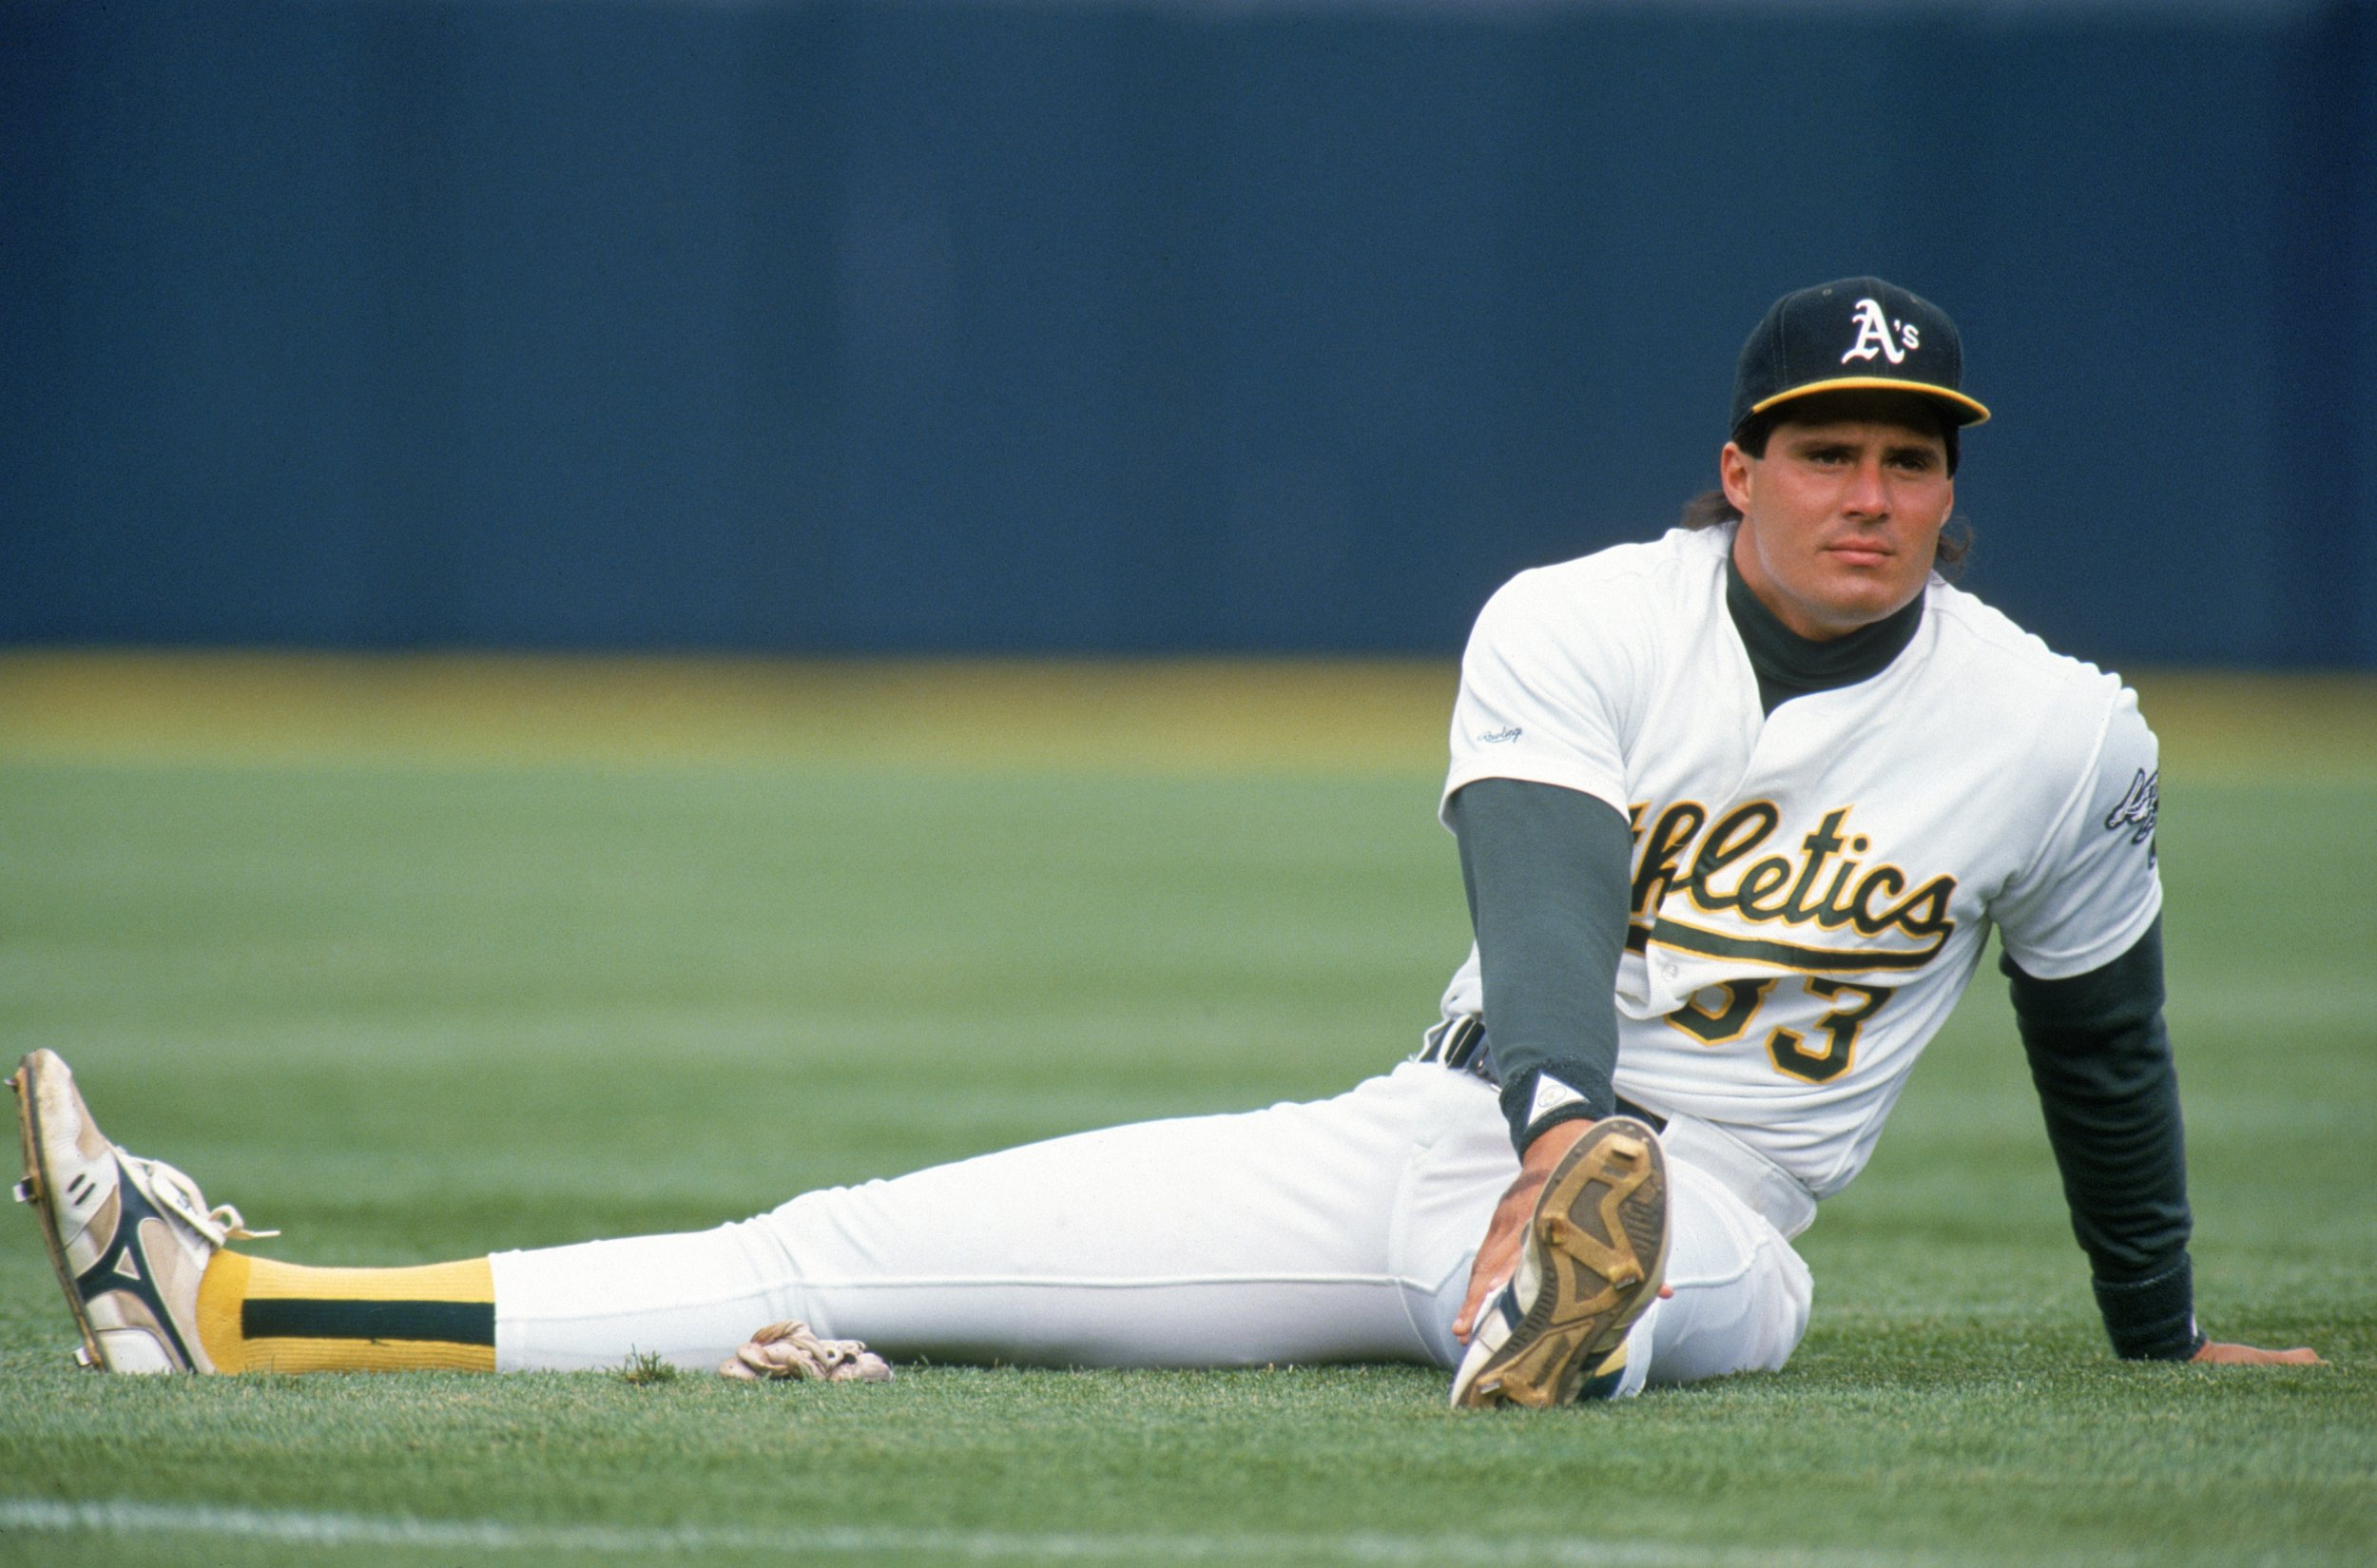 12_13_Jose_Canseco